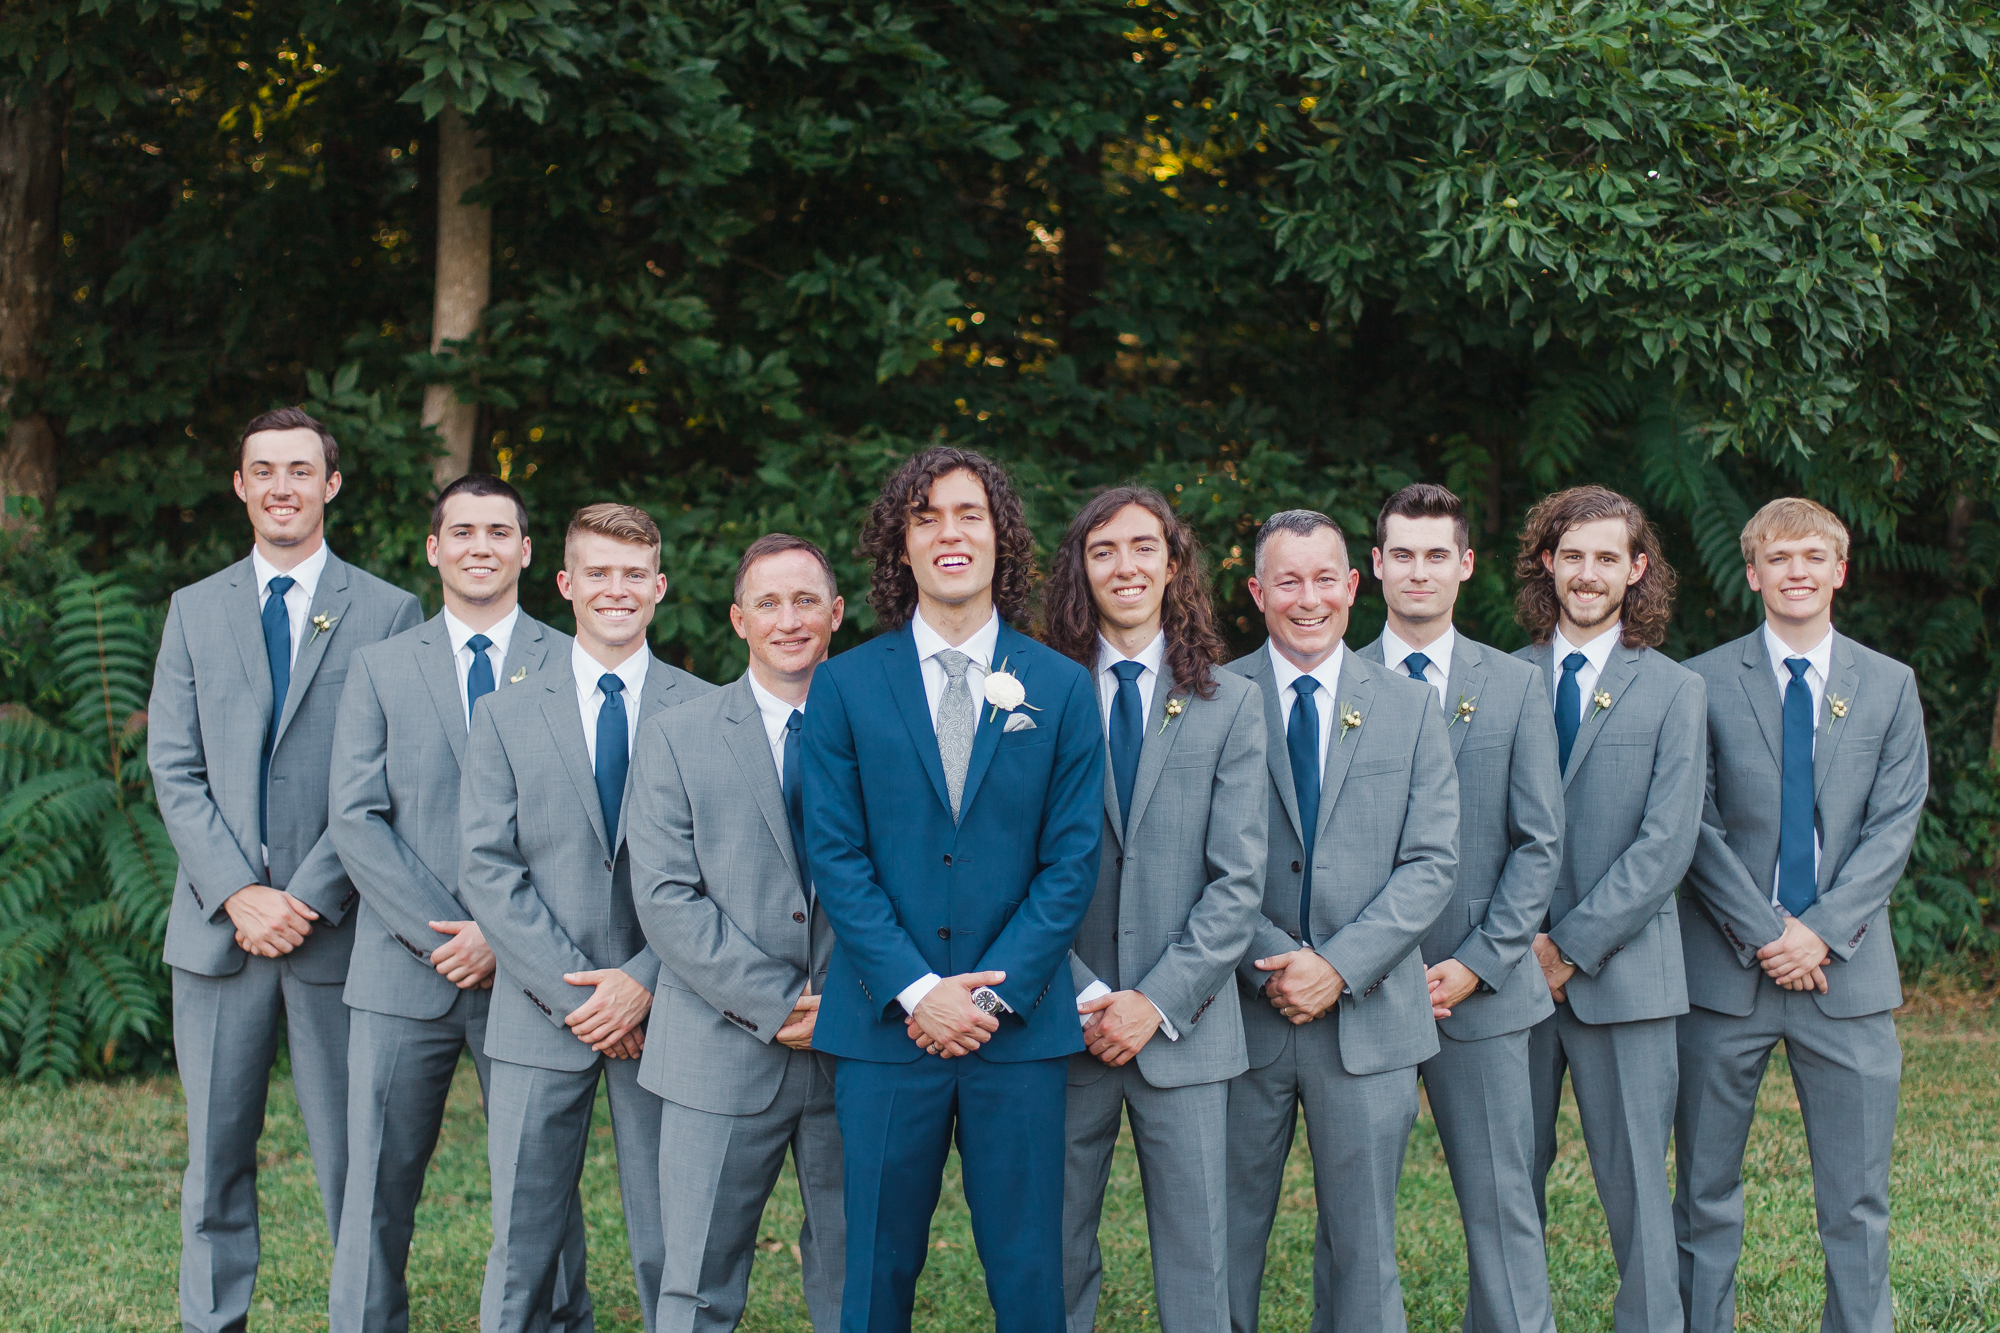 groom with groomsmen different color suits